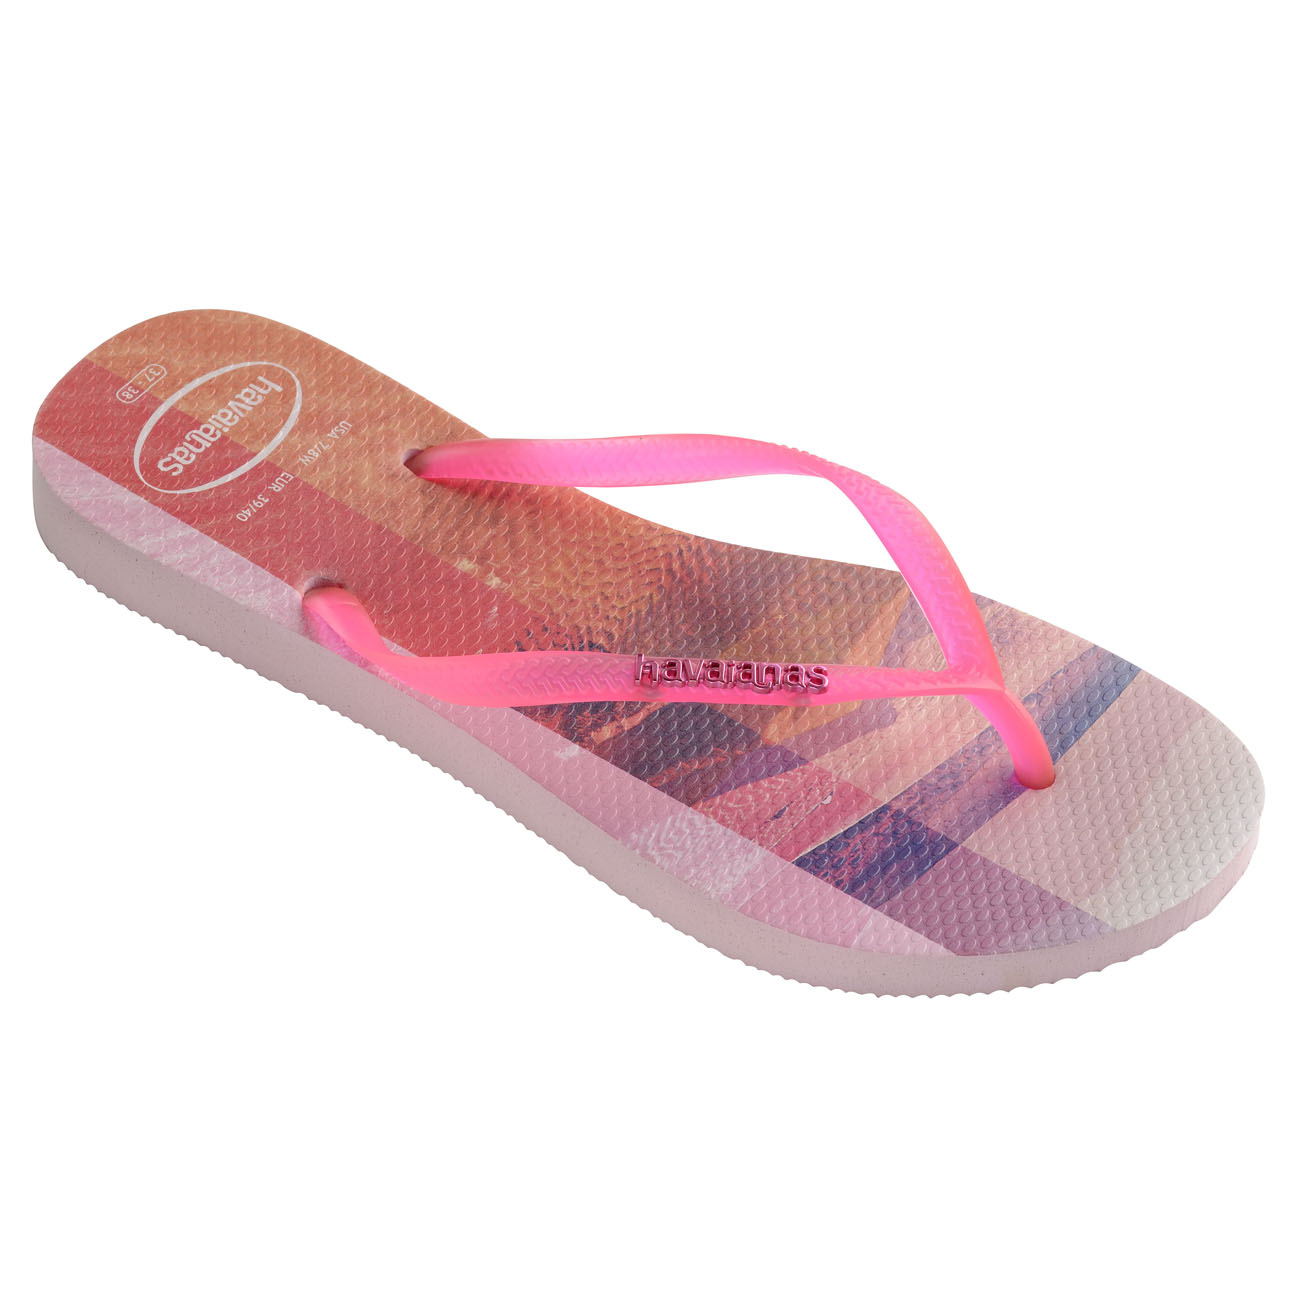 Ladies Havaianas Summer Slim Paisage Thong Toe Post Holiday Summer Havaianas Sandals All Talla fde876